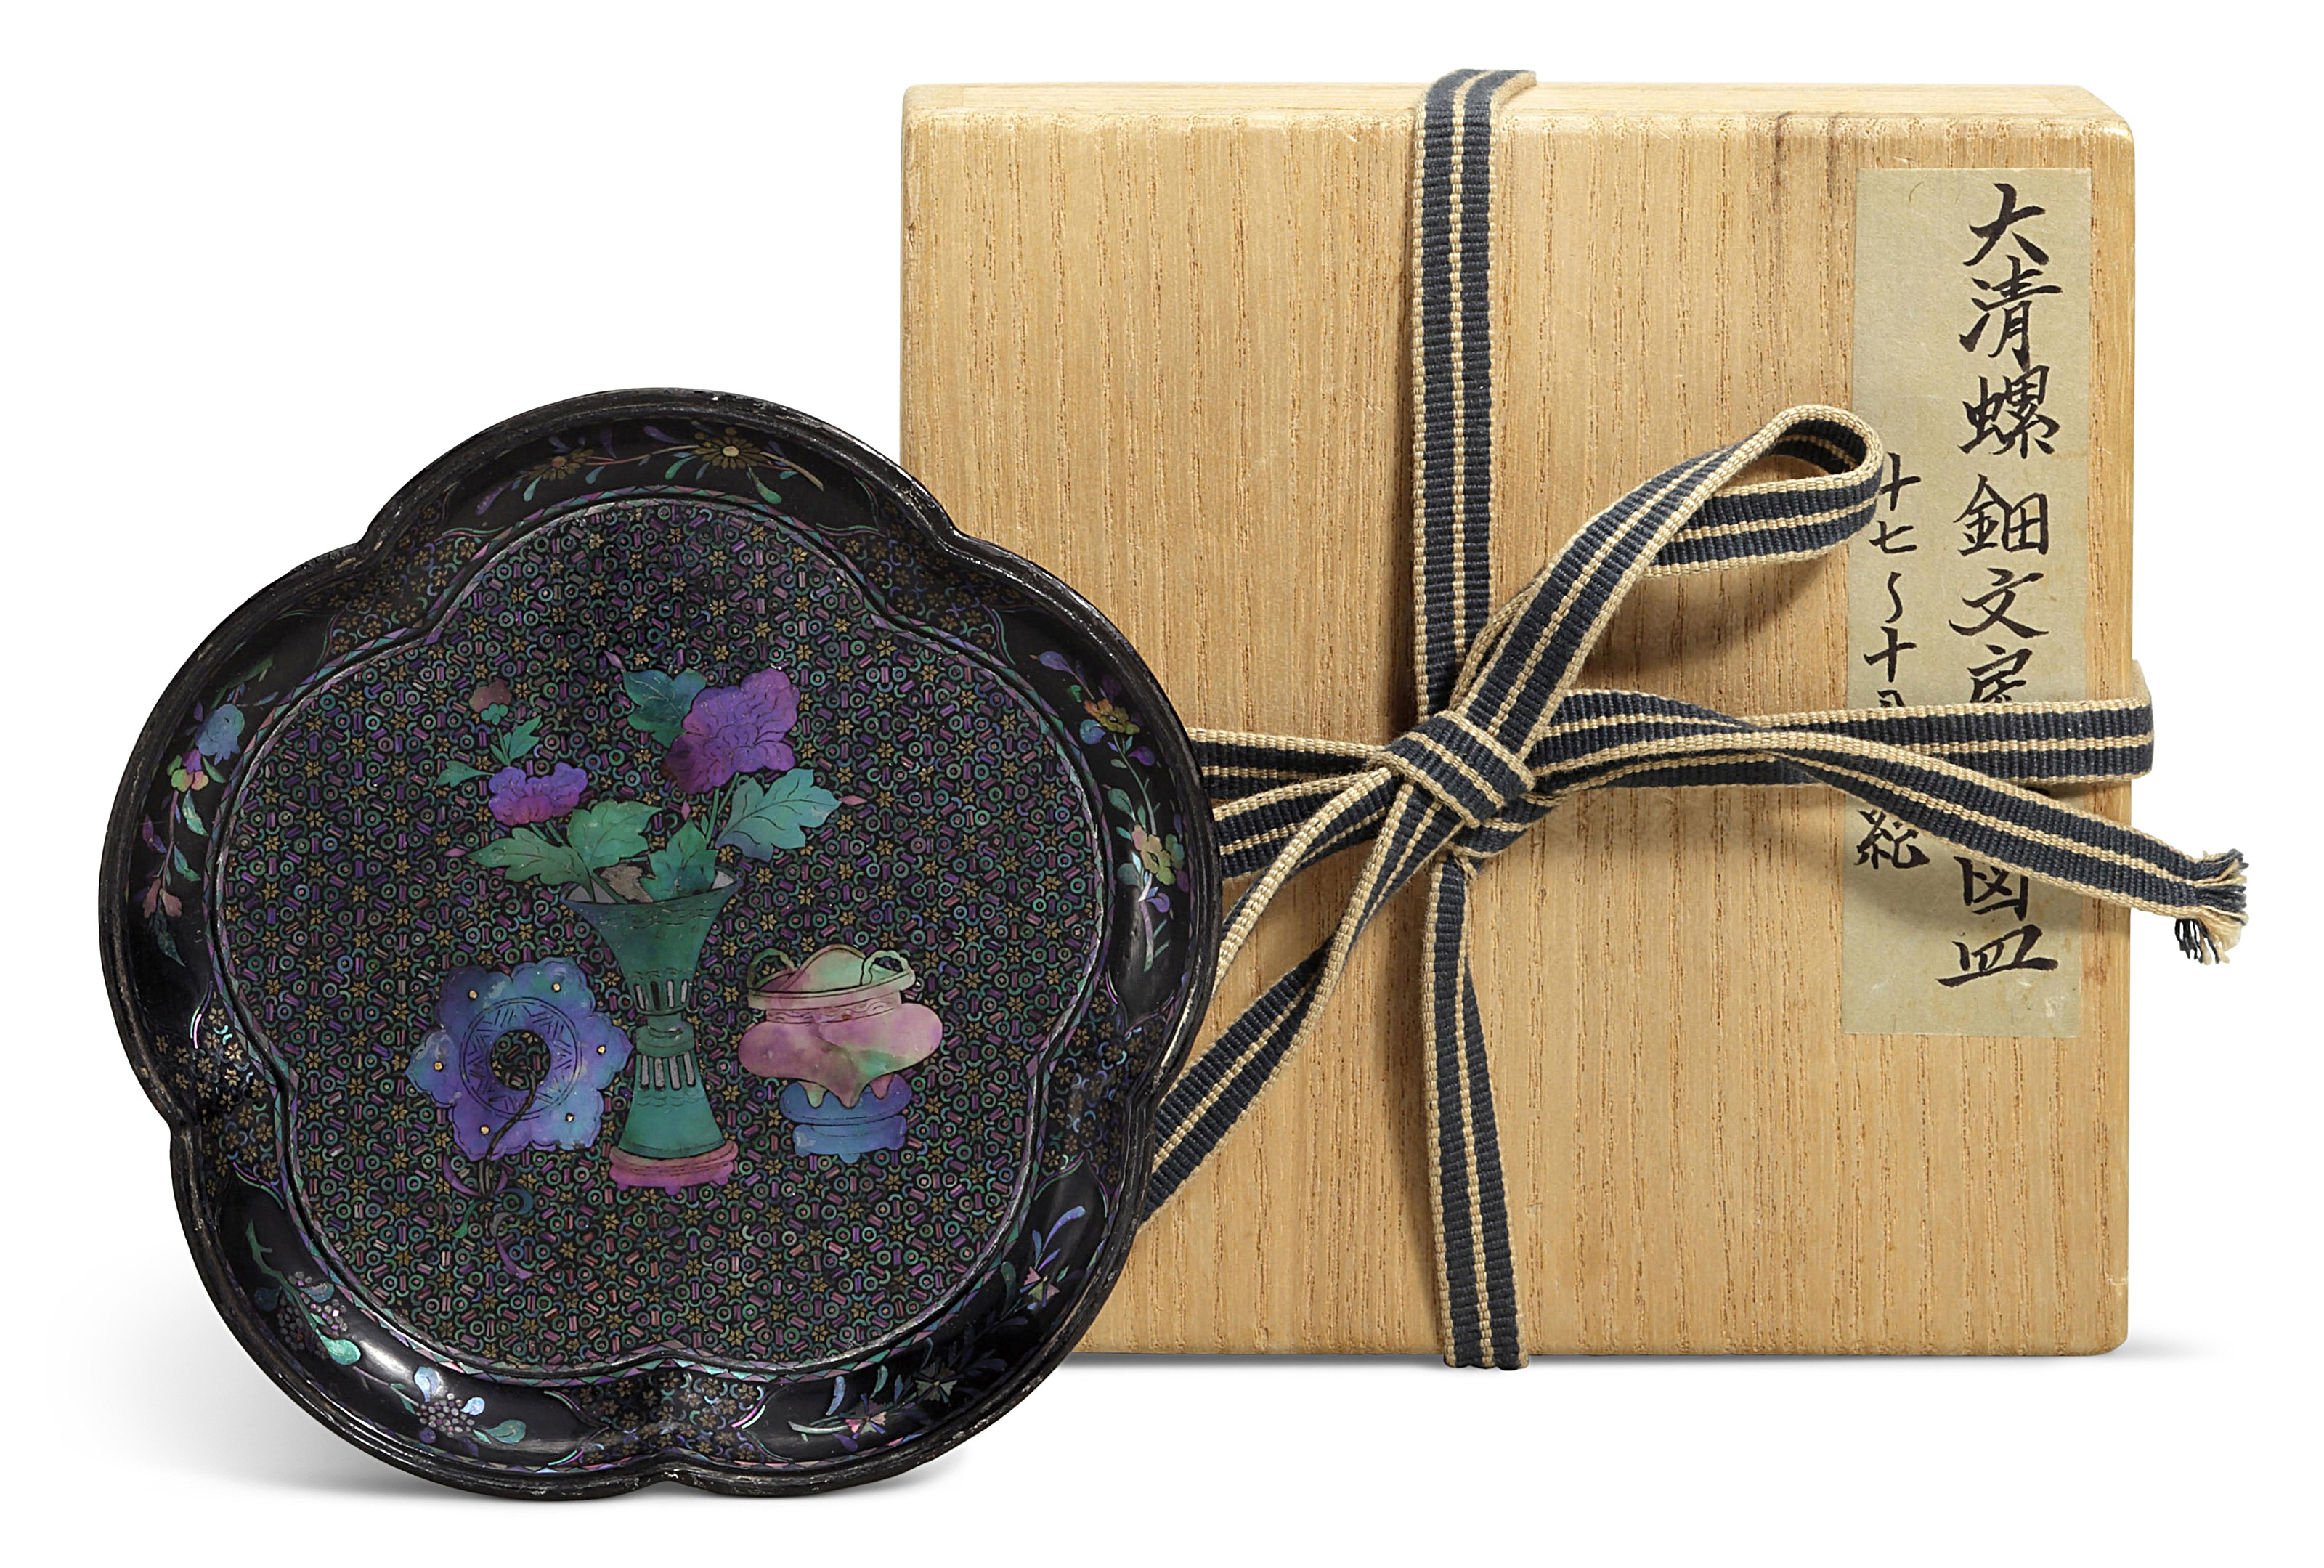 A SMALL MOTHER-OF-PEARL INLAID BLACK LACQUER DISH